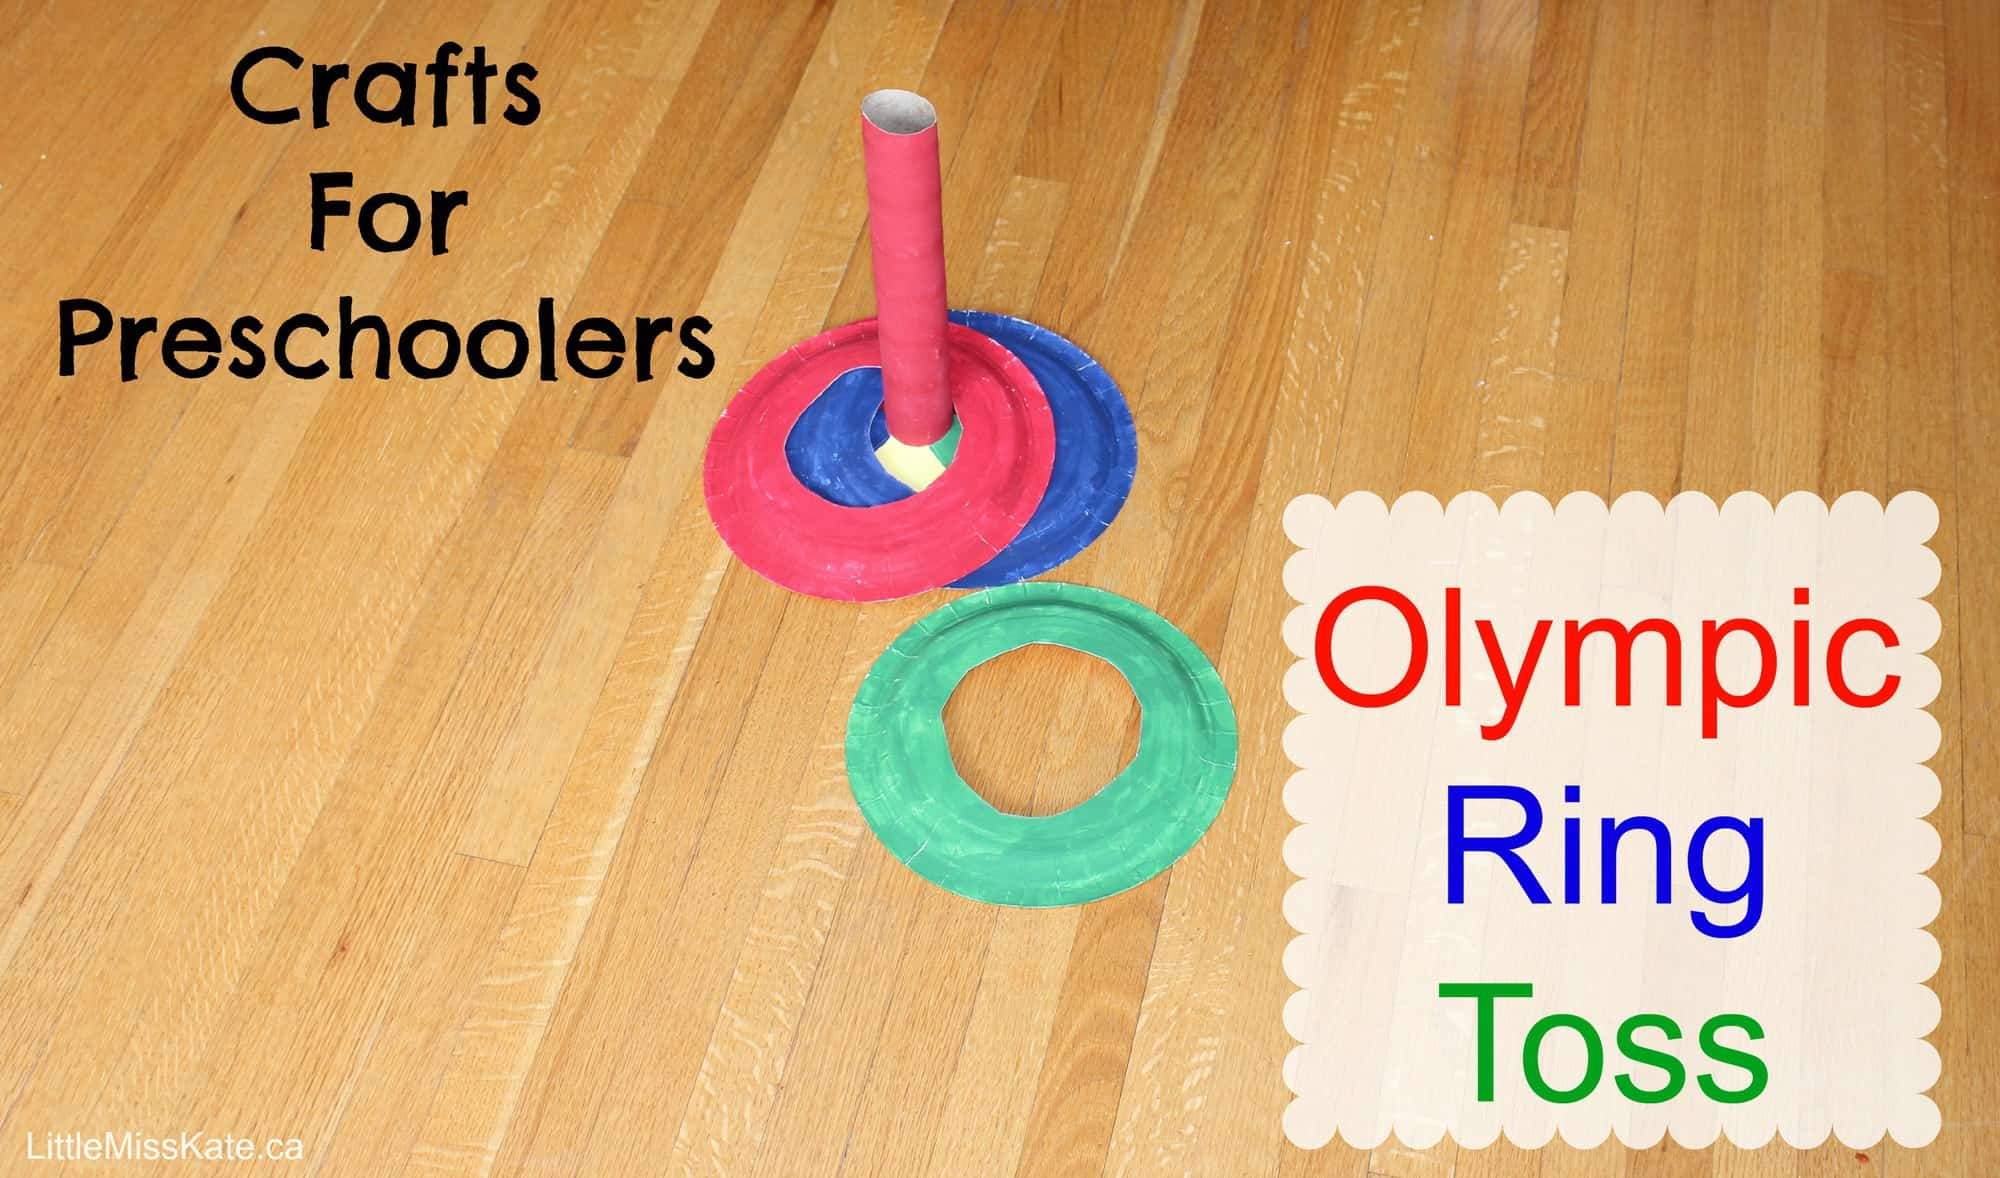 Crafts for Preschoolers - Olympic Ring Toss Game 6